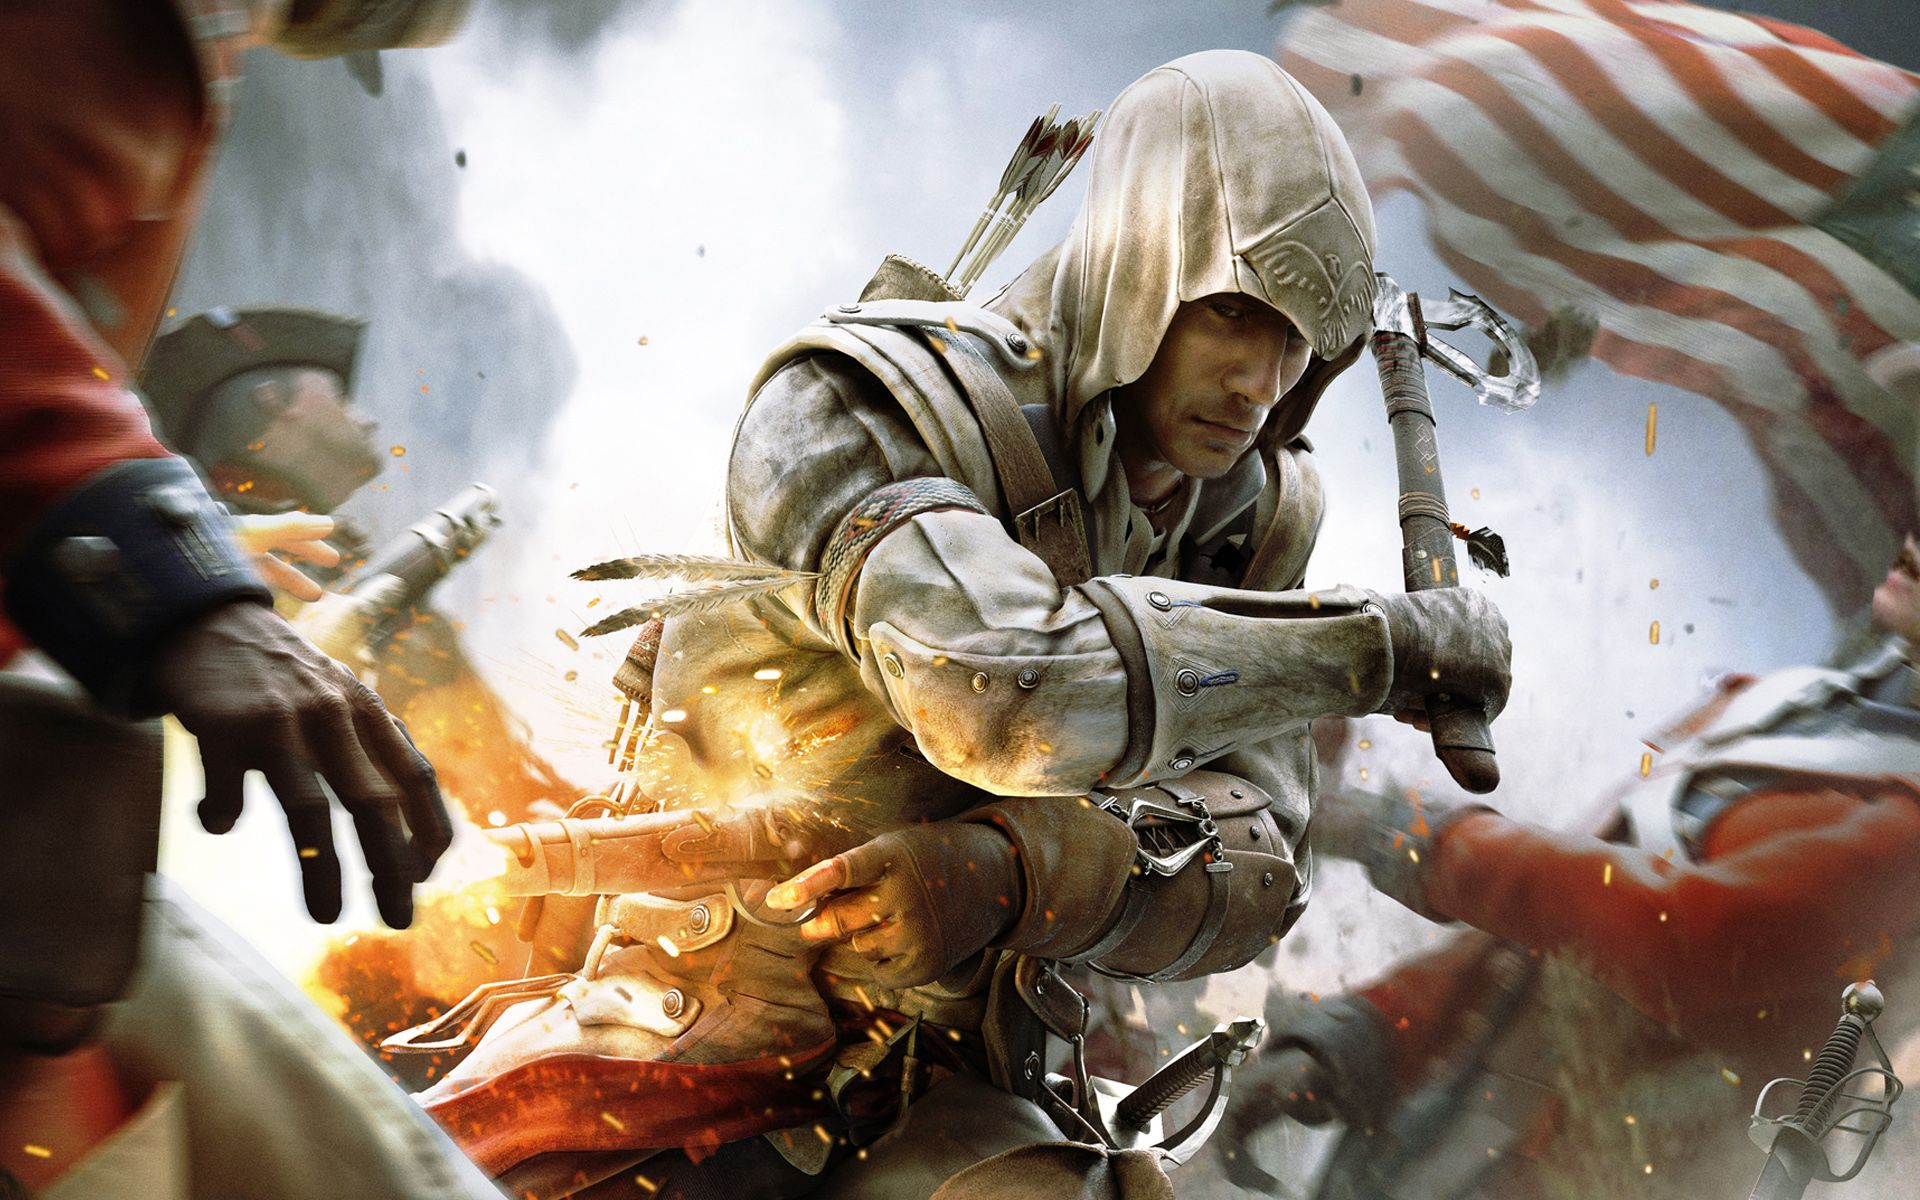 Assassins creed games free online - Hd Assassin S Creed Iii Game Wallpaper For Download 10226